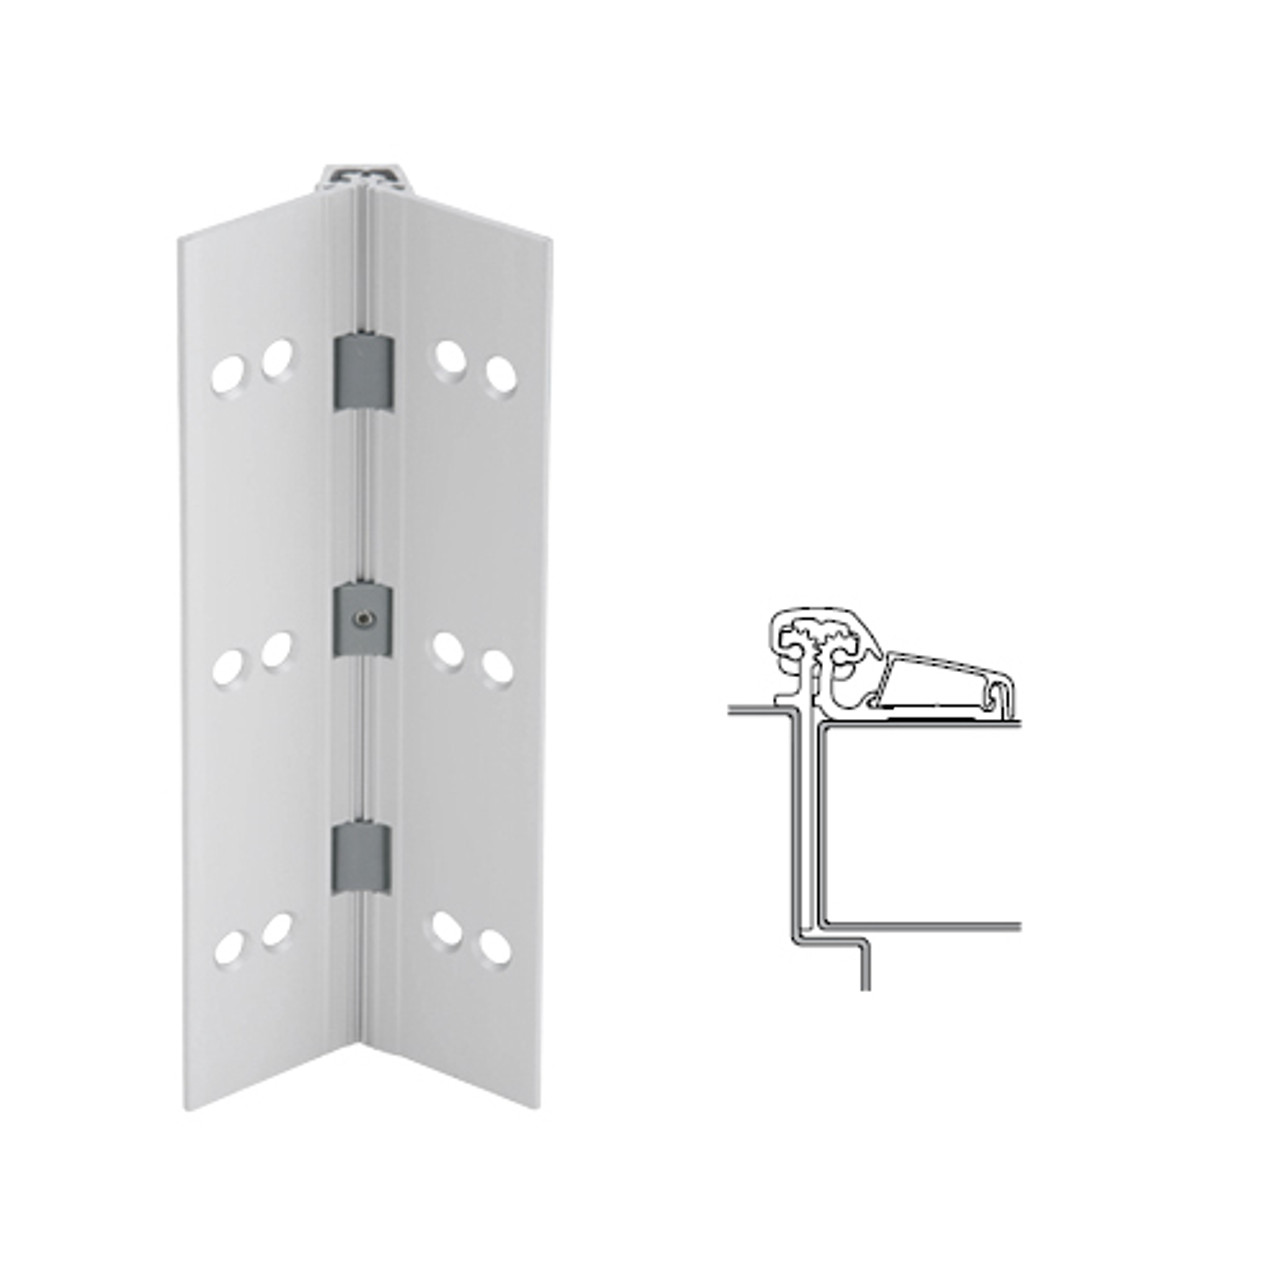 054XY-US28-85-TEKWD IVES Adjustable Half Surface Continuous Geared Hinges with Wood Screws in Satin Aluminum